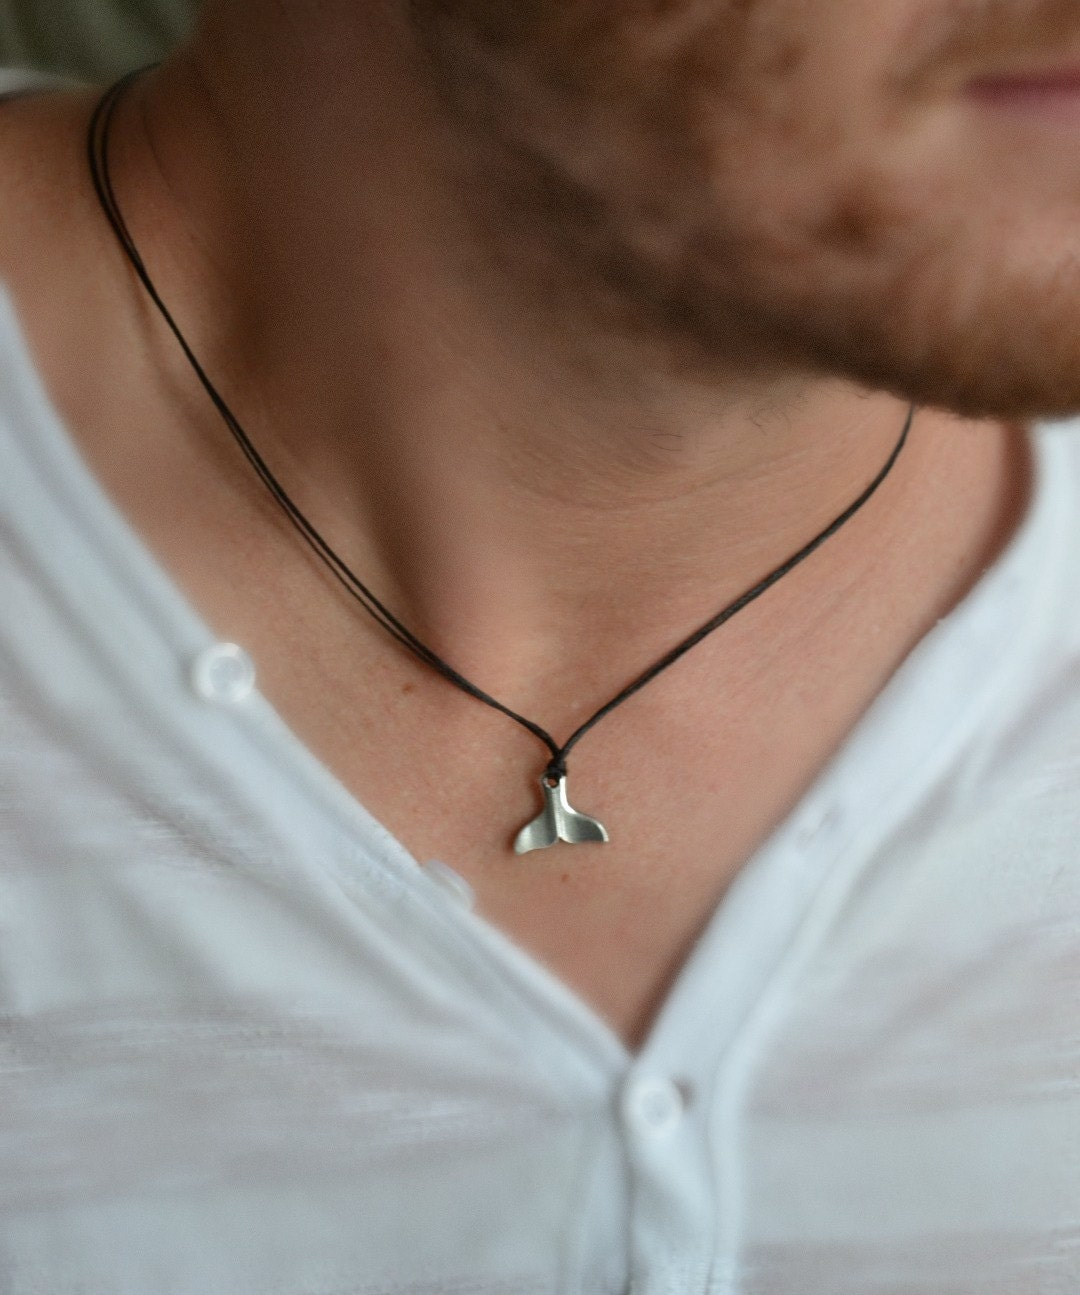 Whale Tail Necklace For Men Men S Necklace With A Silver